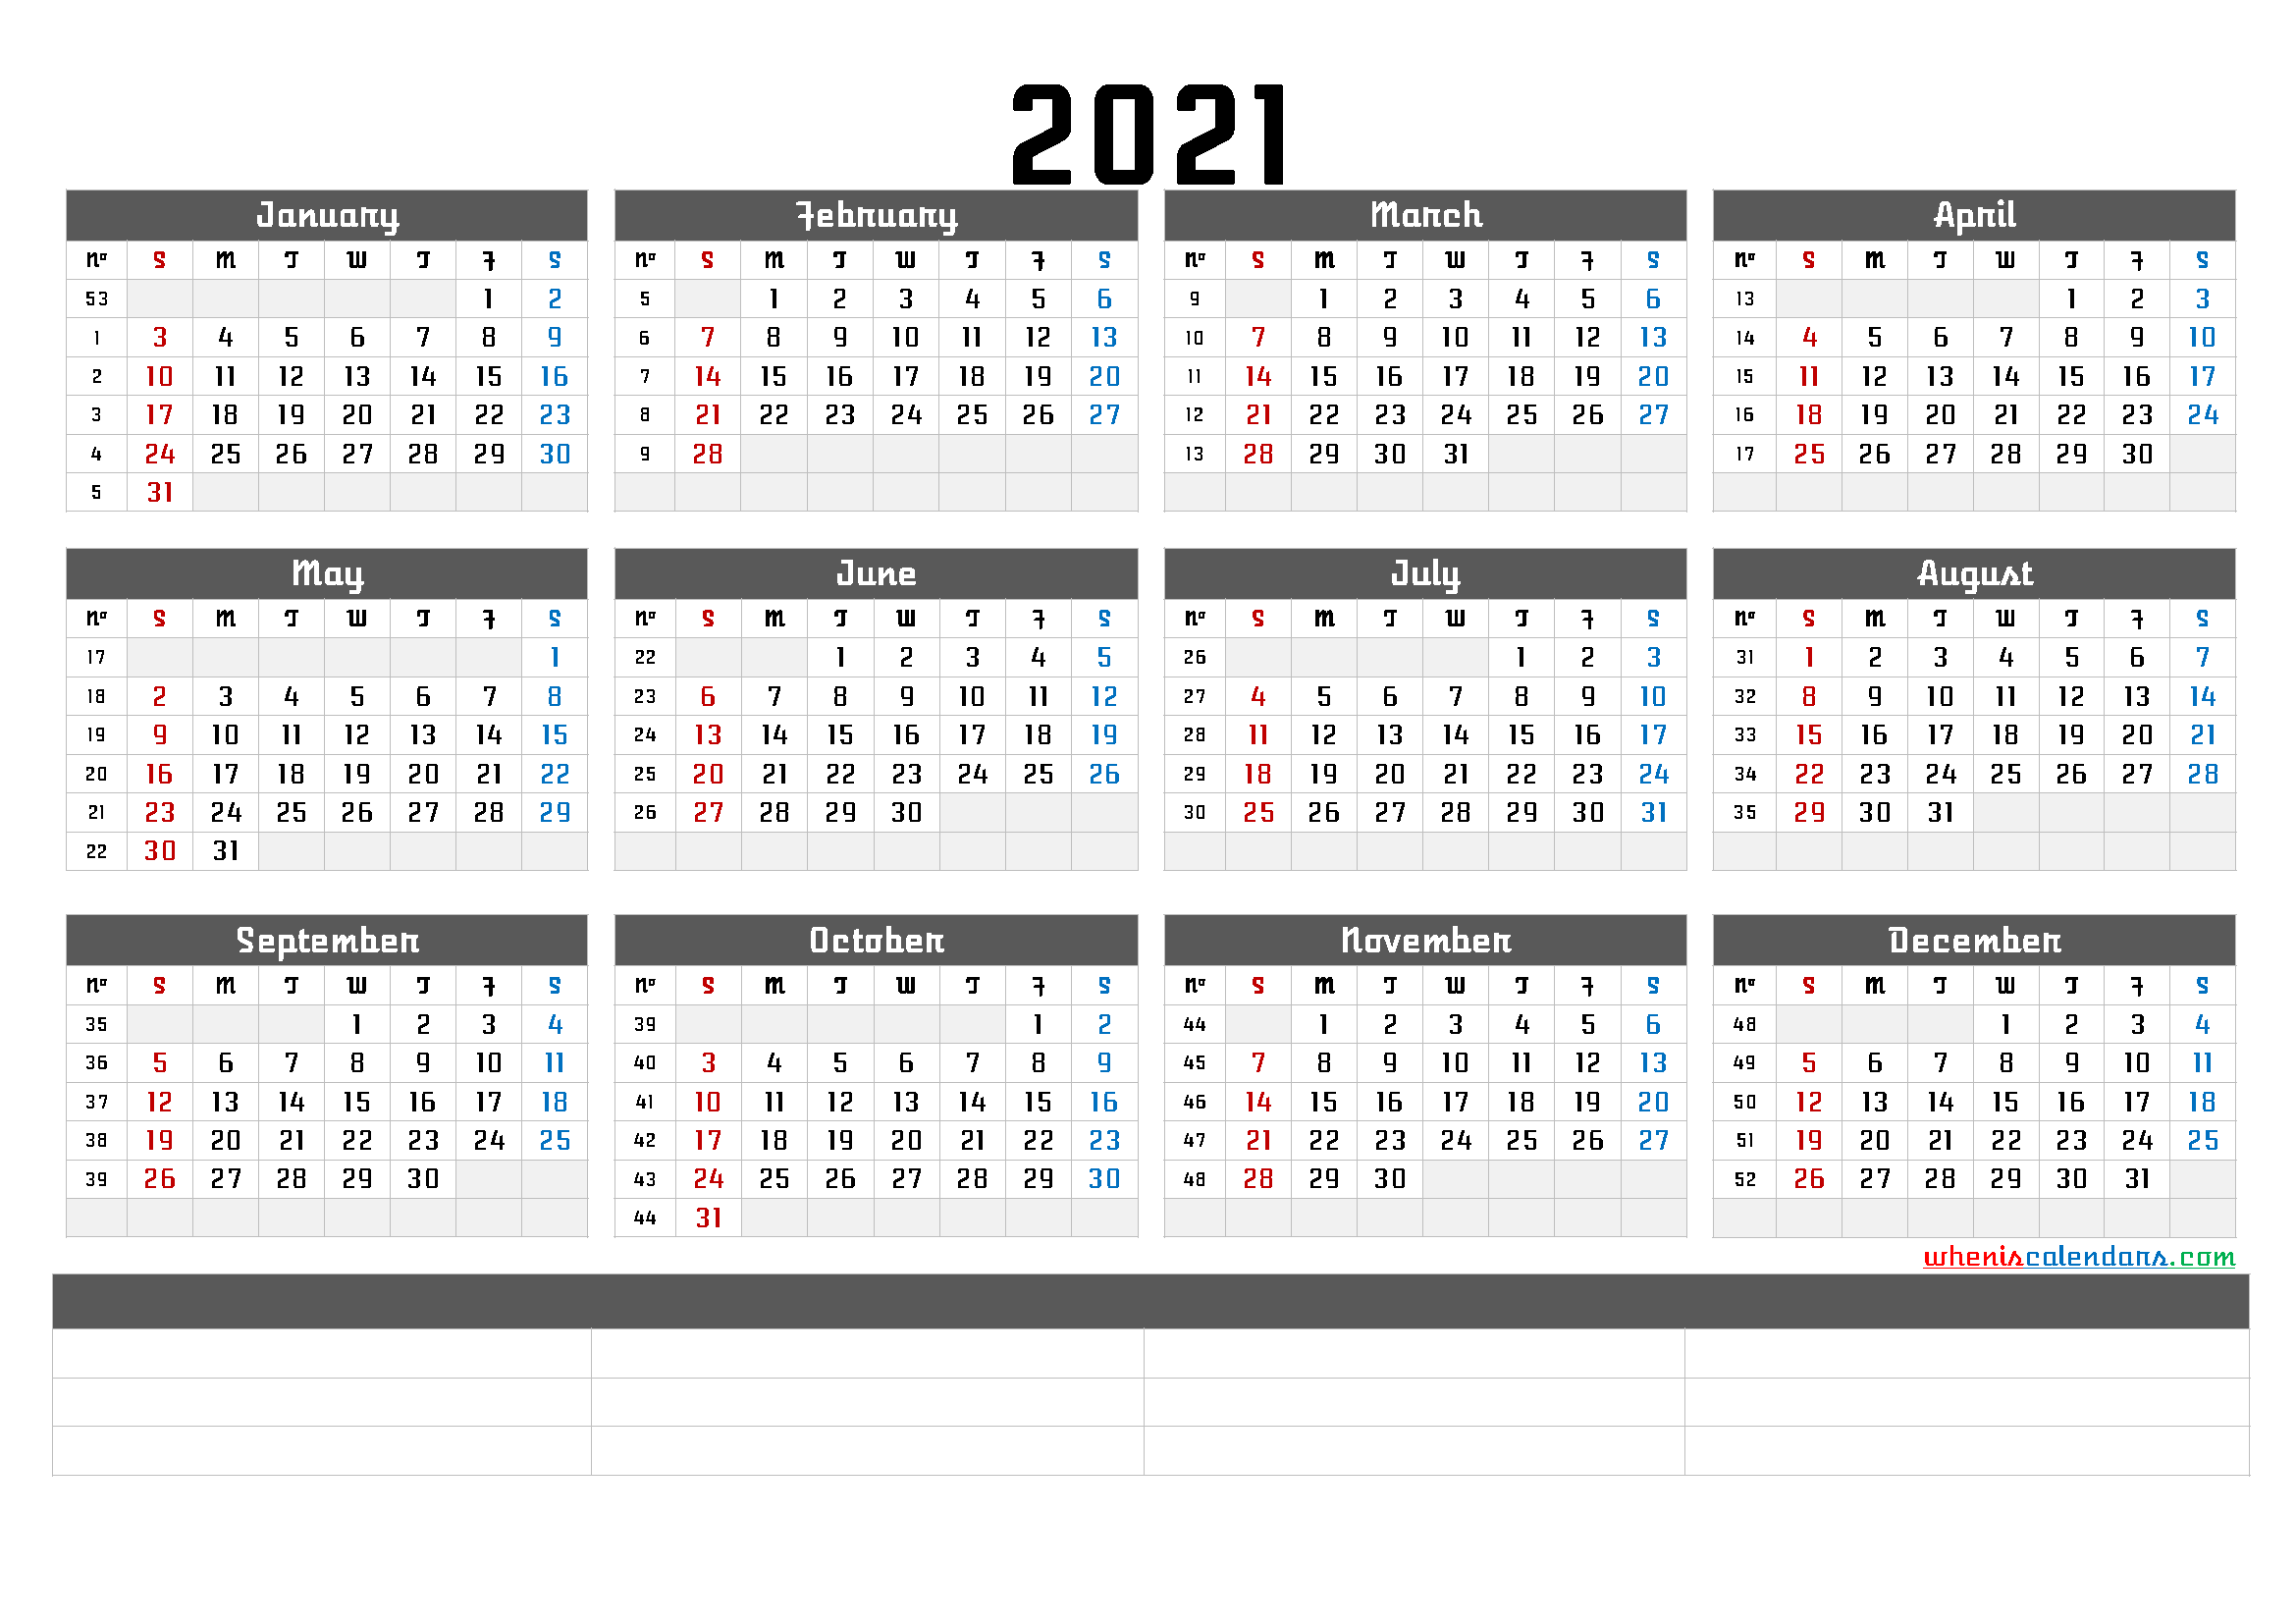 free printable 2021 calendar with week numbers and space for notes. full year calendar 2021 on one page